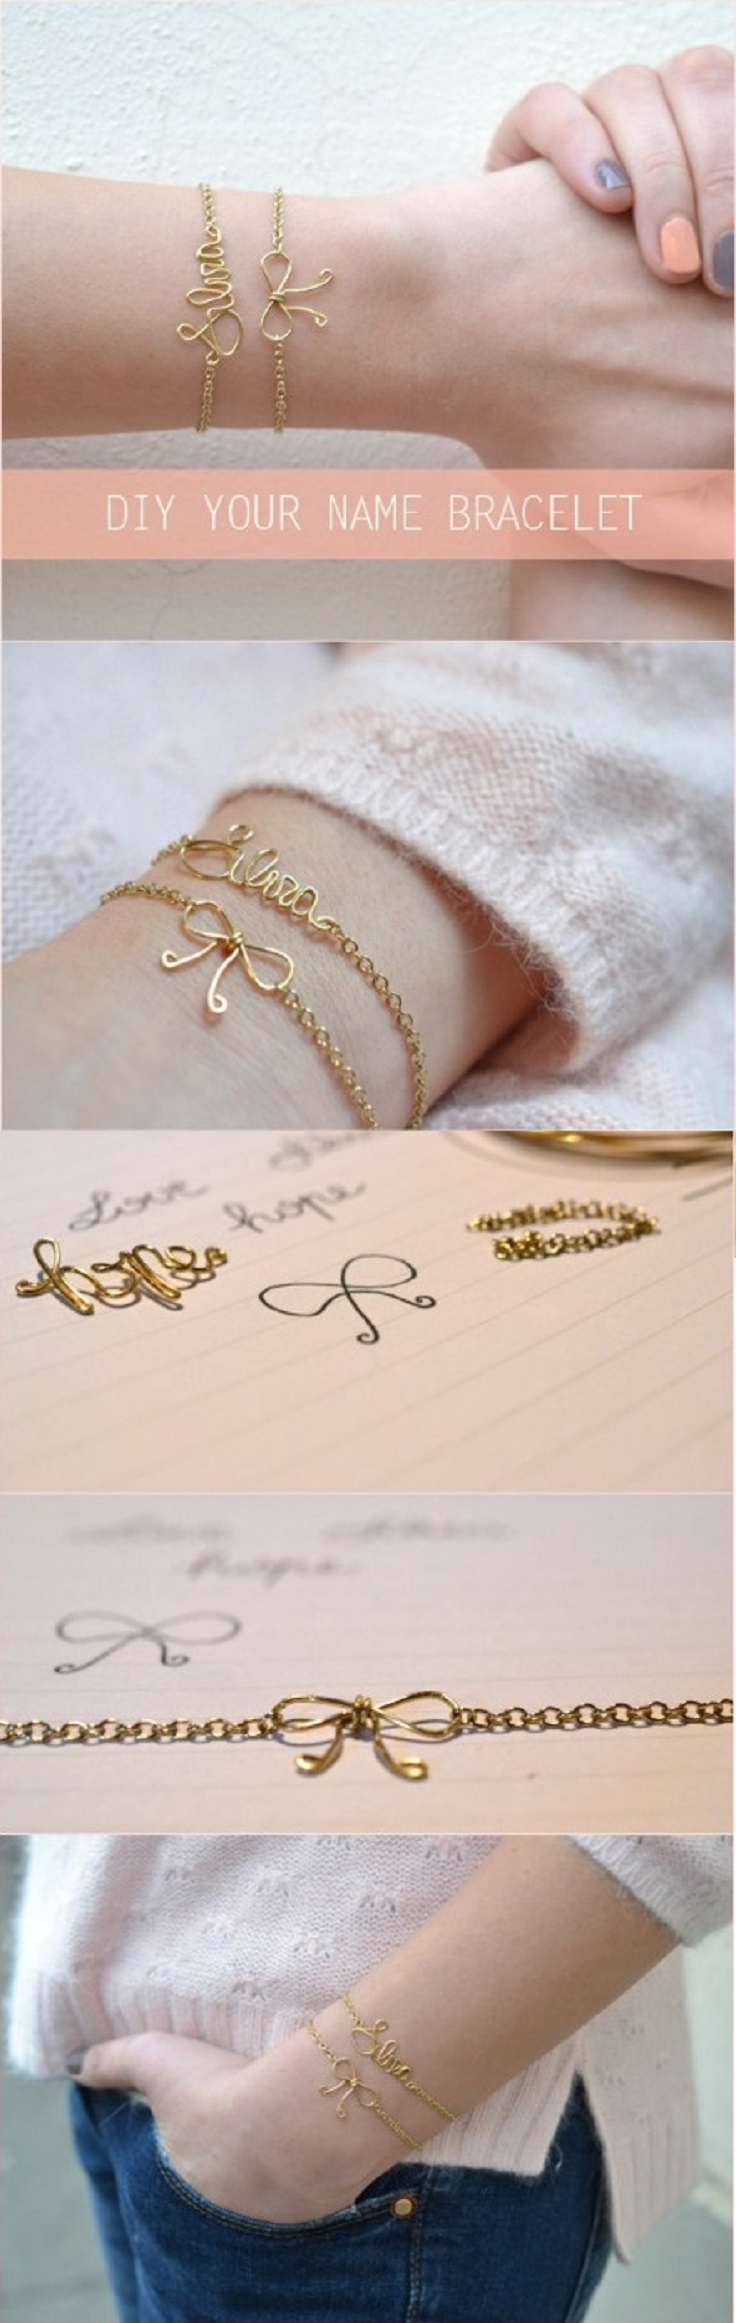 33598-Diy-Your-Name-Bracelet